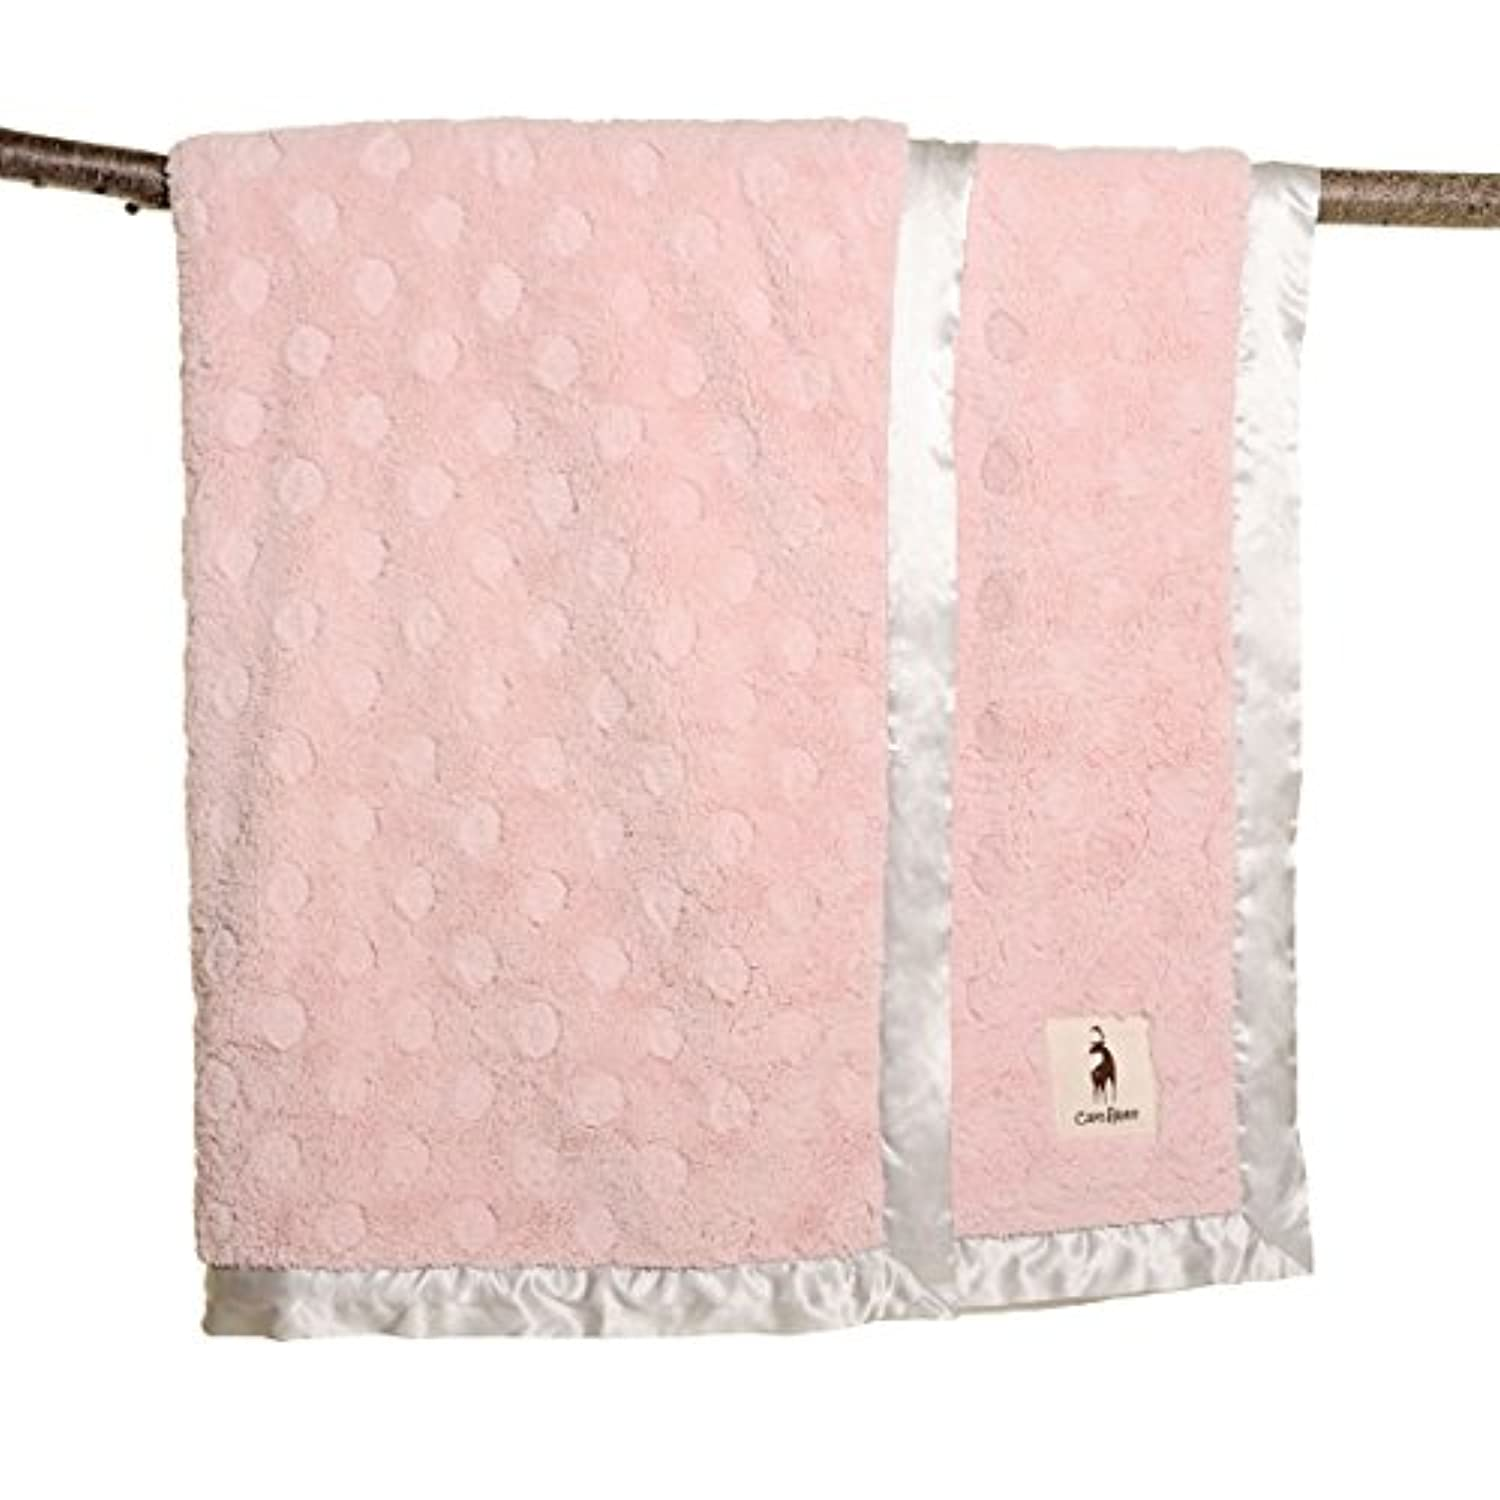 careAboo Luxury Dot Adult Blanket, 50 x 60 - Pink by careAboo